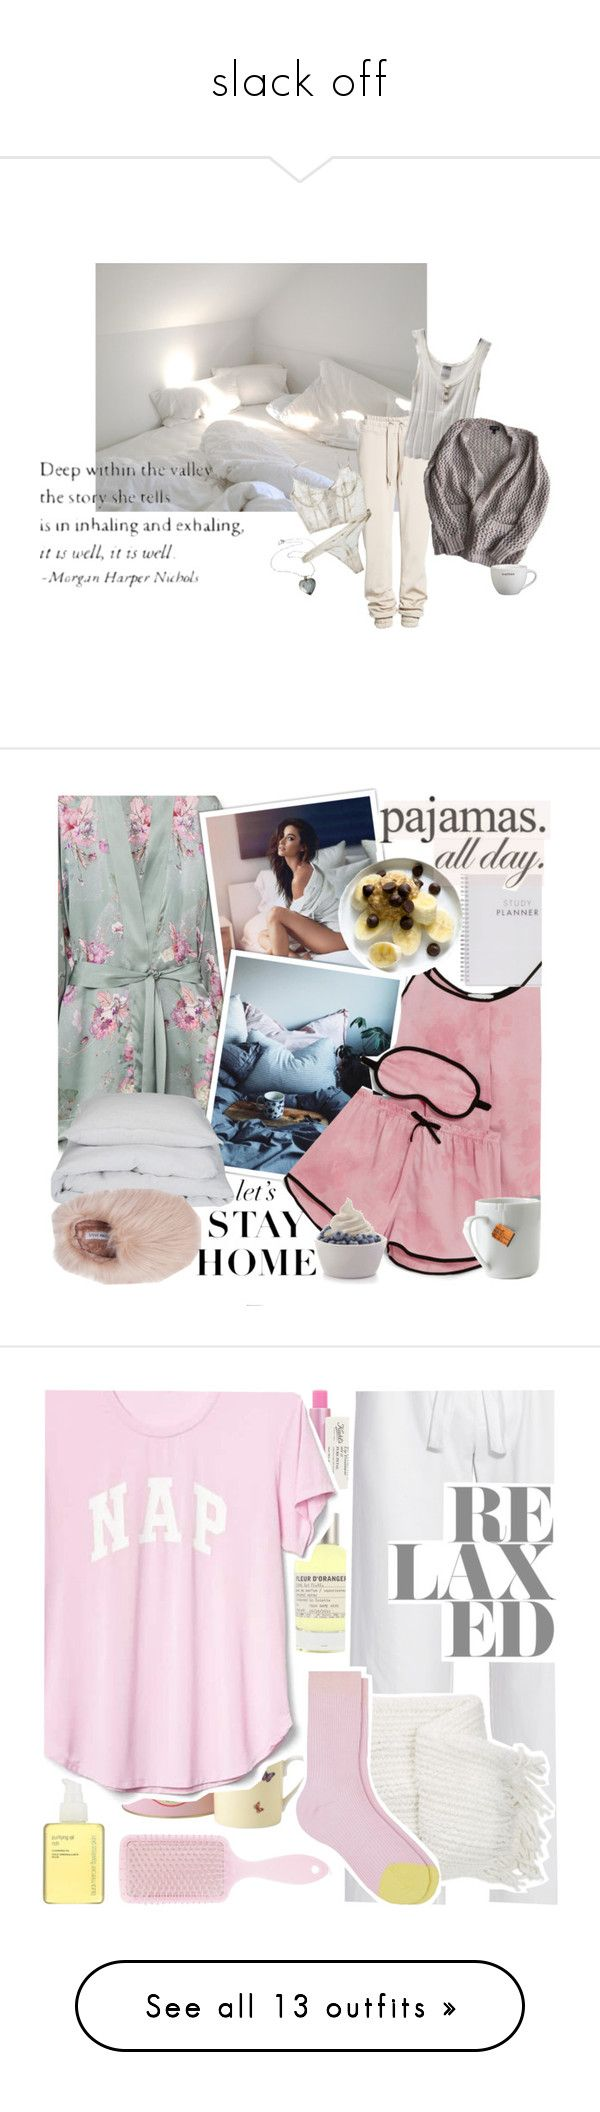 """""""slack off"""" by sallyloreto ❤ liked on Polyvore featuring Ivy Park, Chanel, Topshop, Meng, DKNY, By Nord, Muku, WALL, le mouton noir & co. and Disney"""